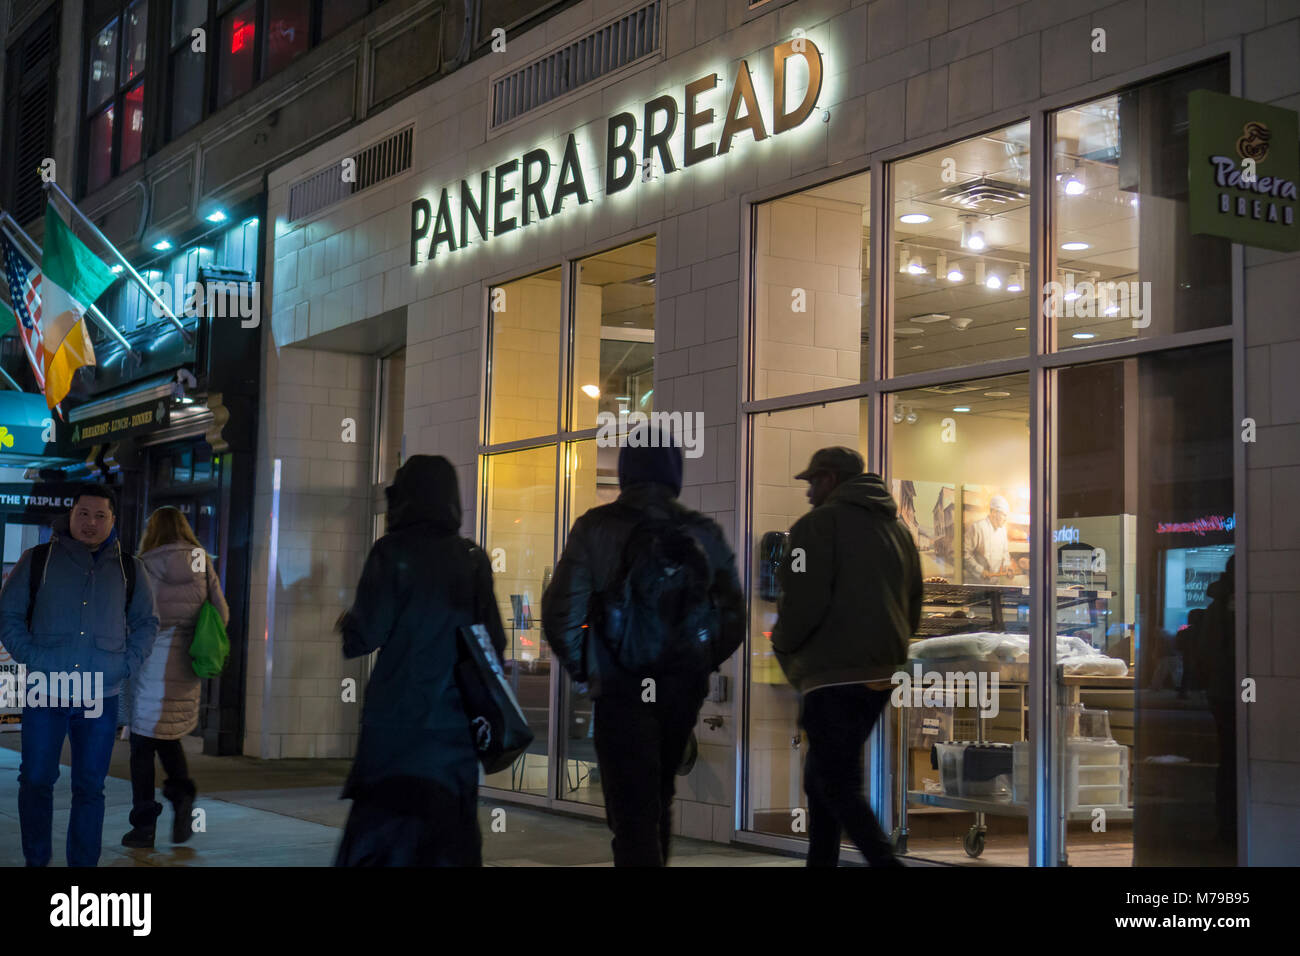 A Panera Bread store in the Chelsea neighborhood of New York, on Tuesday, March 6, 2018. Panera is a brand of JAB - Stock Image